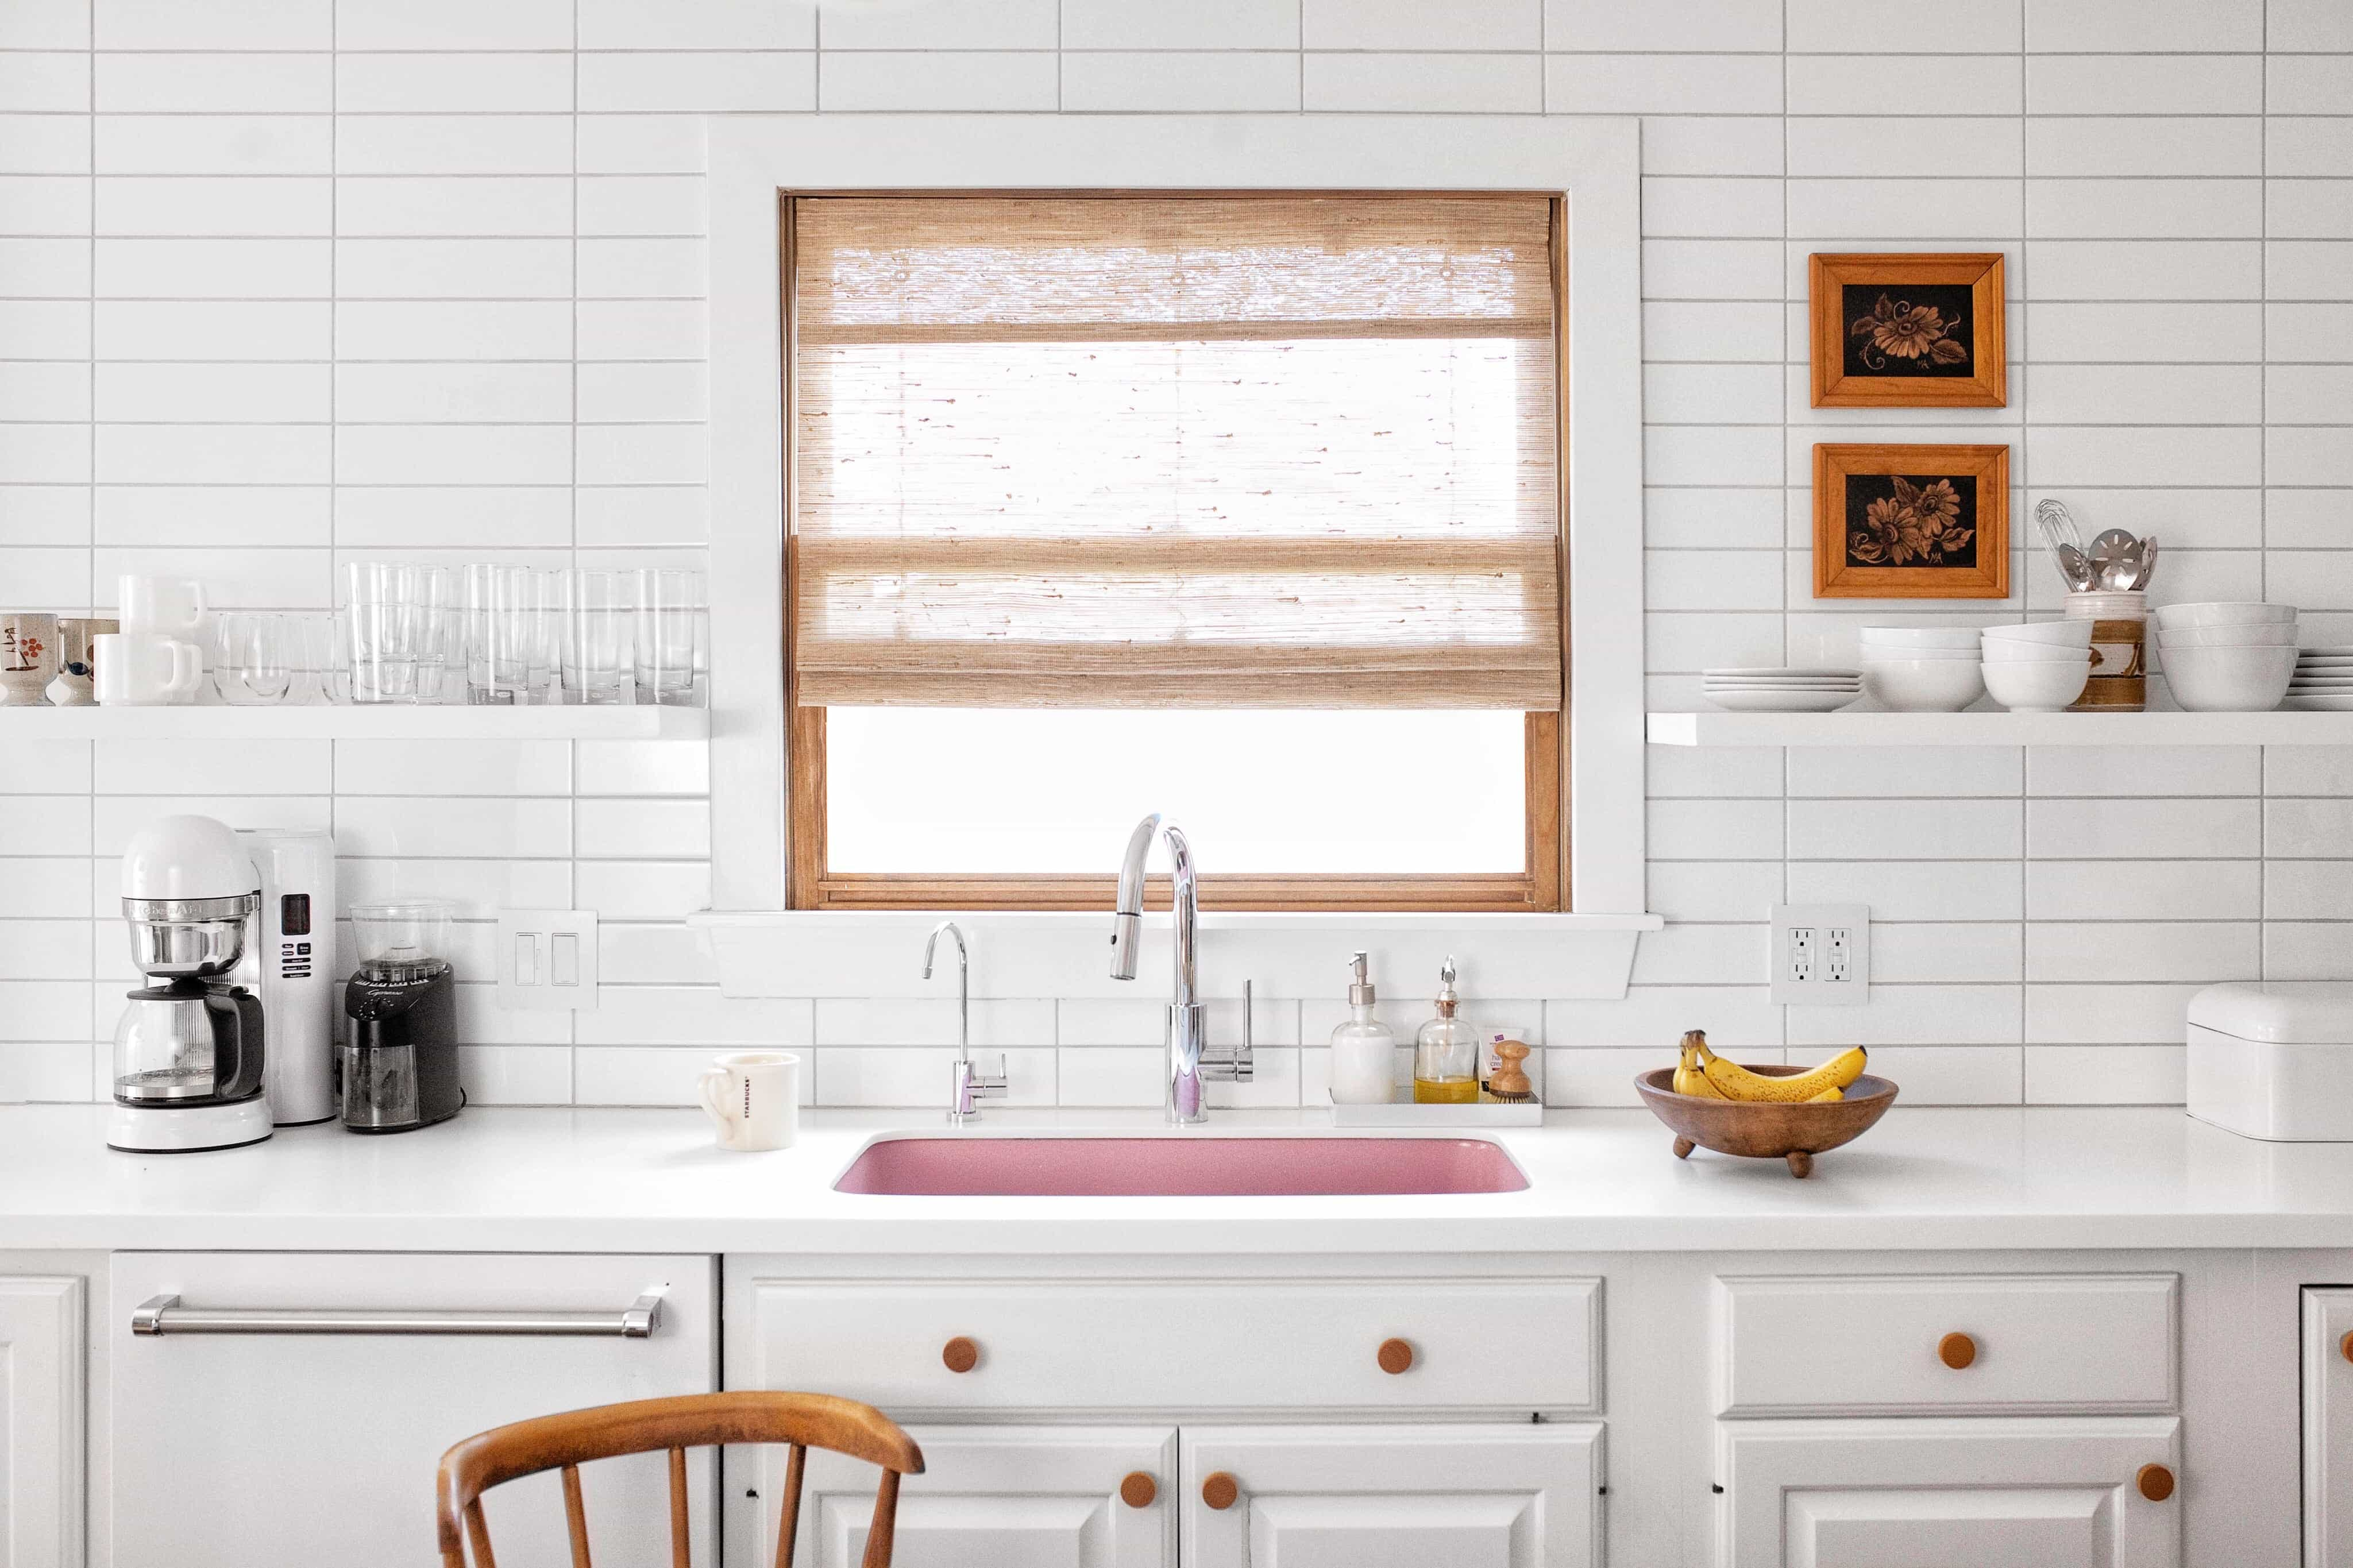 70s inspired, white kitchen with pink sink and woven wood shades in the window.